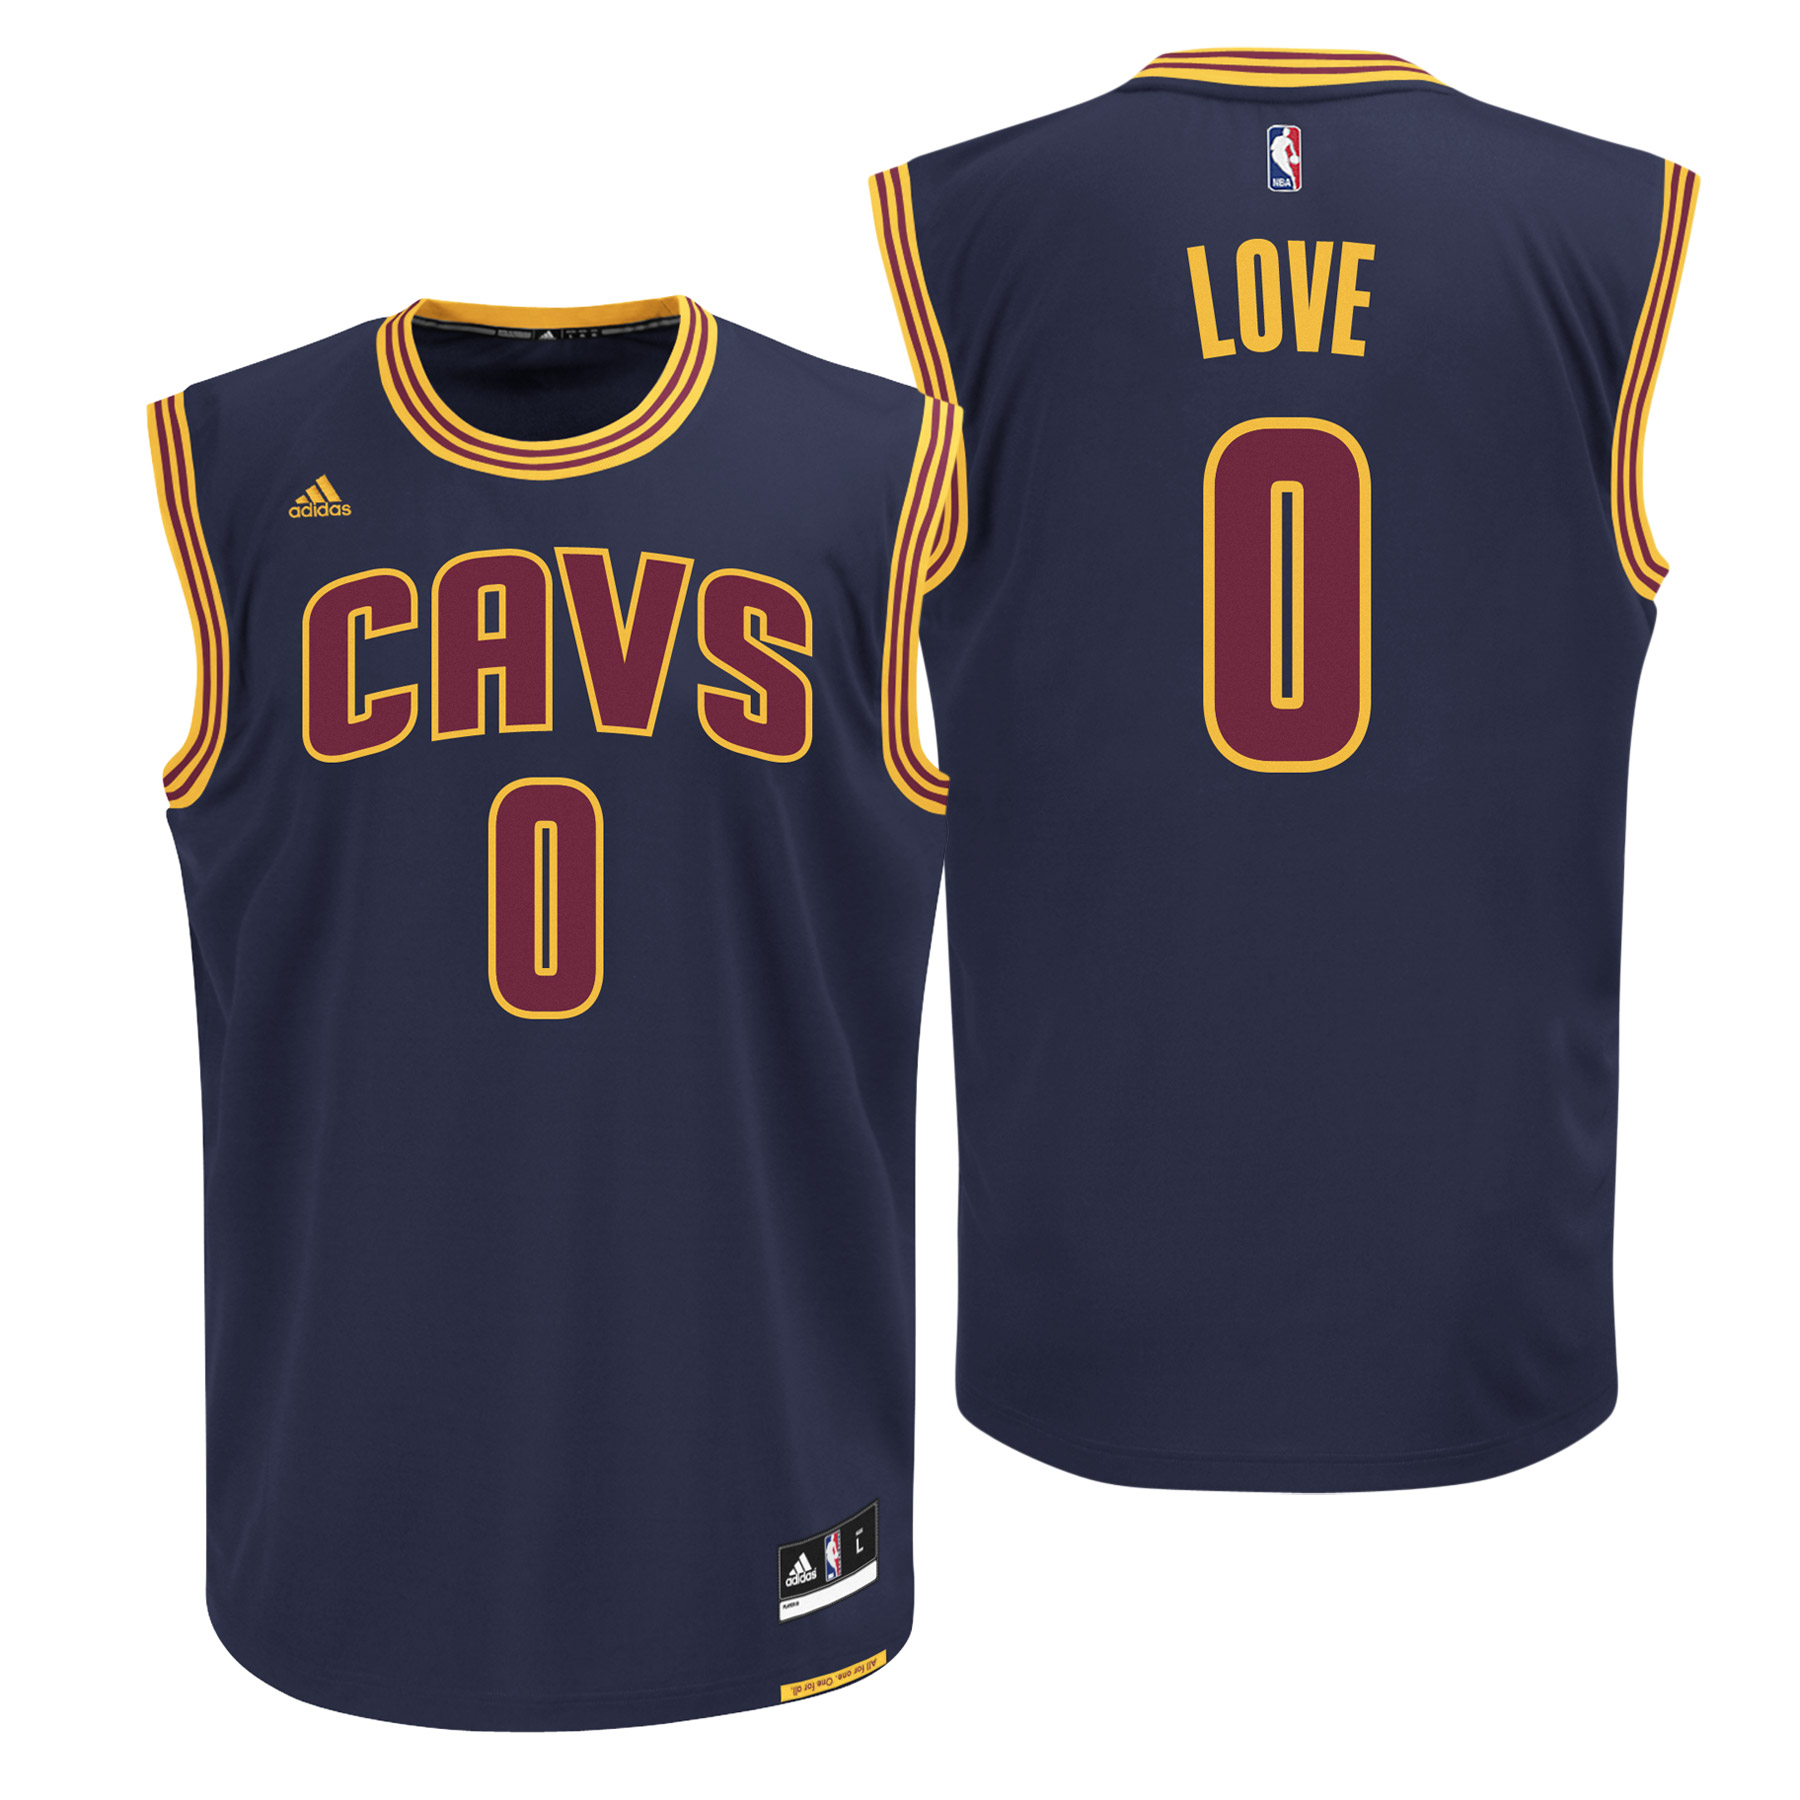 Cleveland Cavaliers Road Alternate Replica Jersey - Kevin Love - Youth